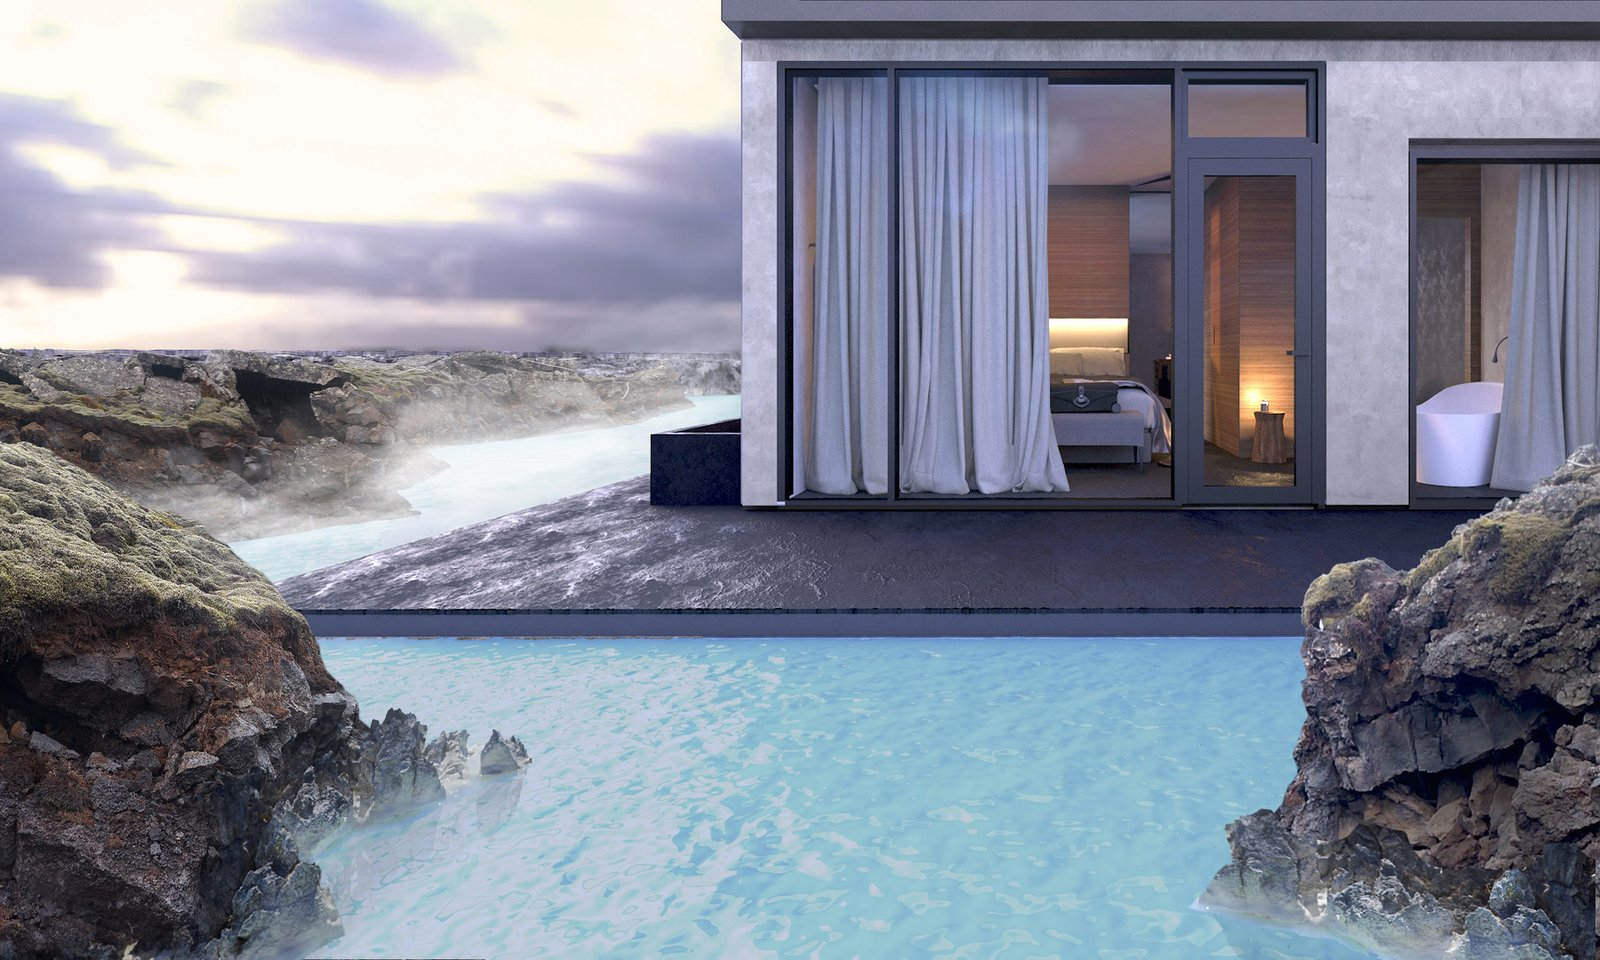 Dive Into the Next Phase of Icelands Blue Lagoon  Dwell